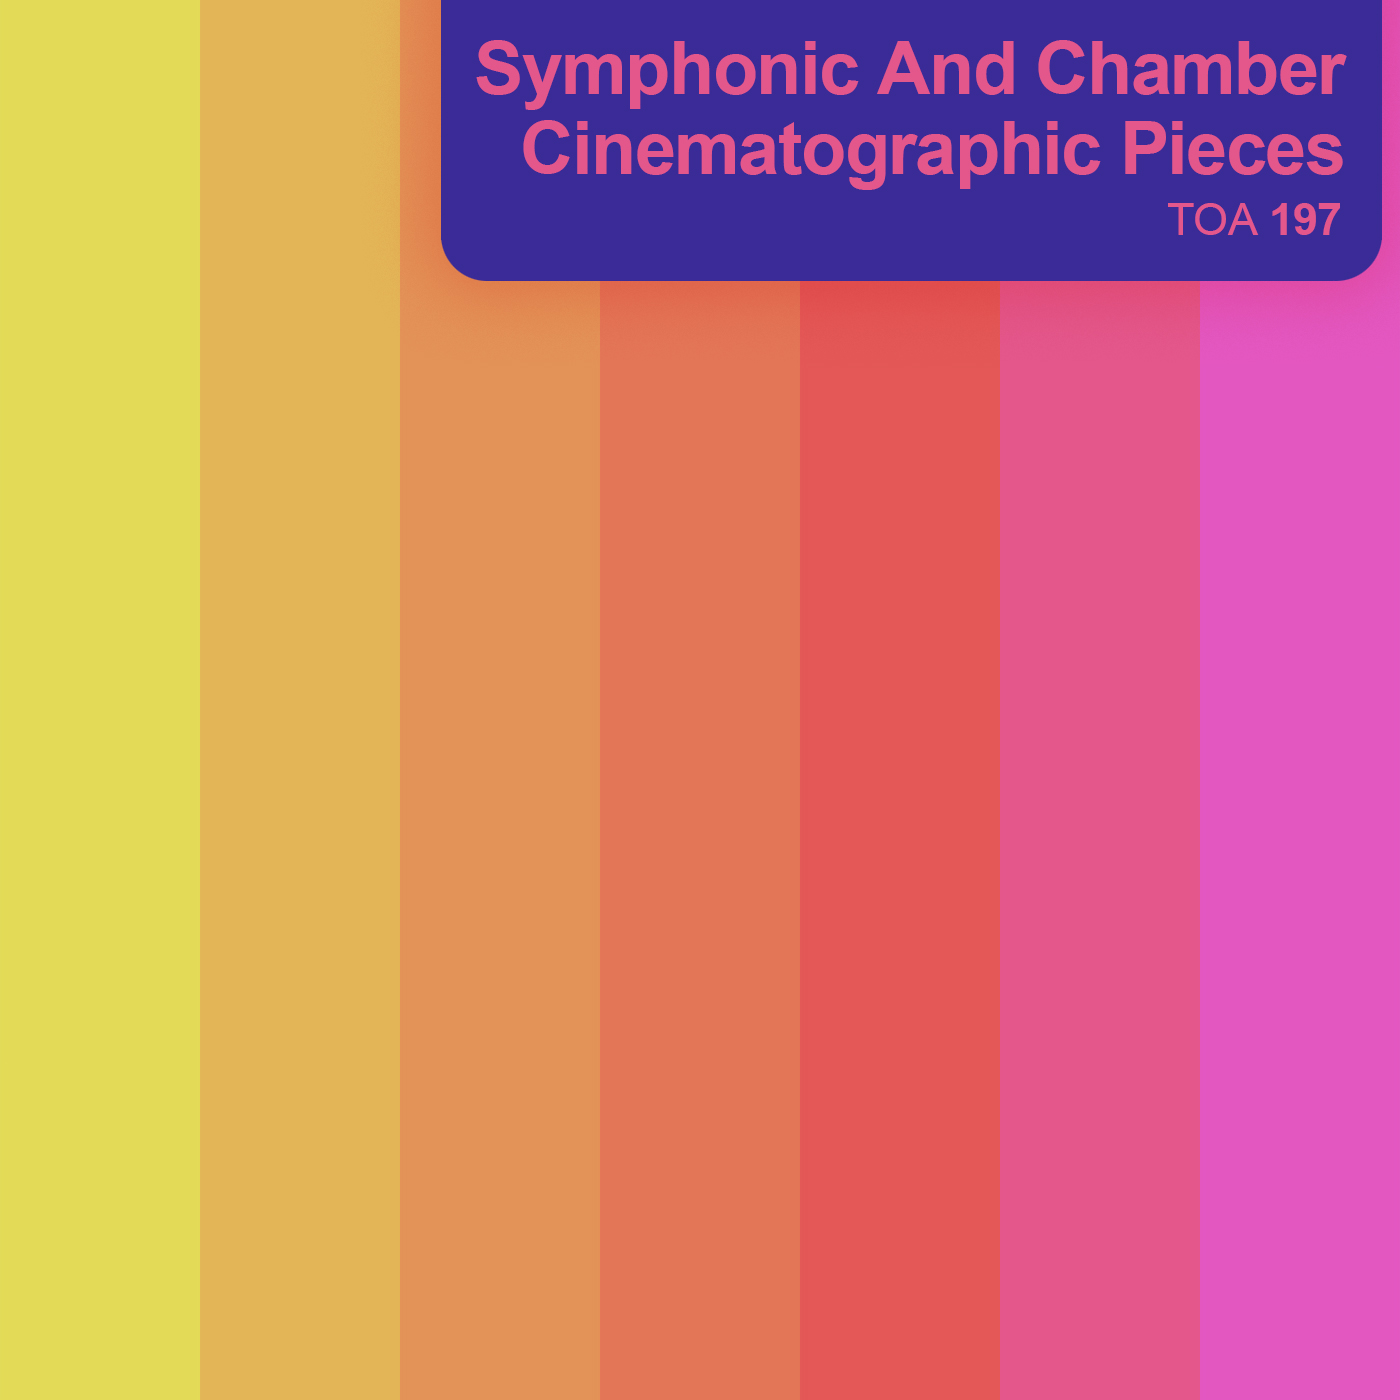 Symphonic And Chamber Cinematographic Pieces